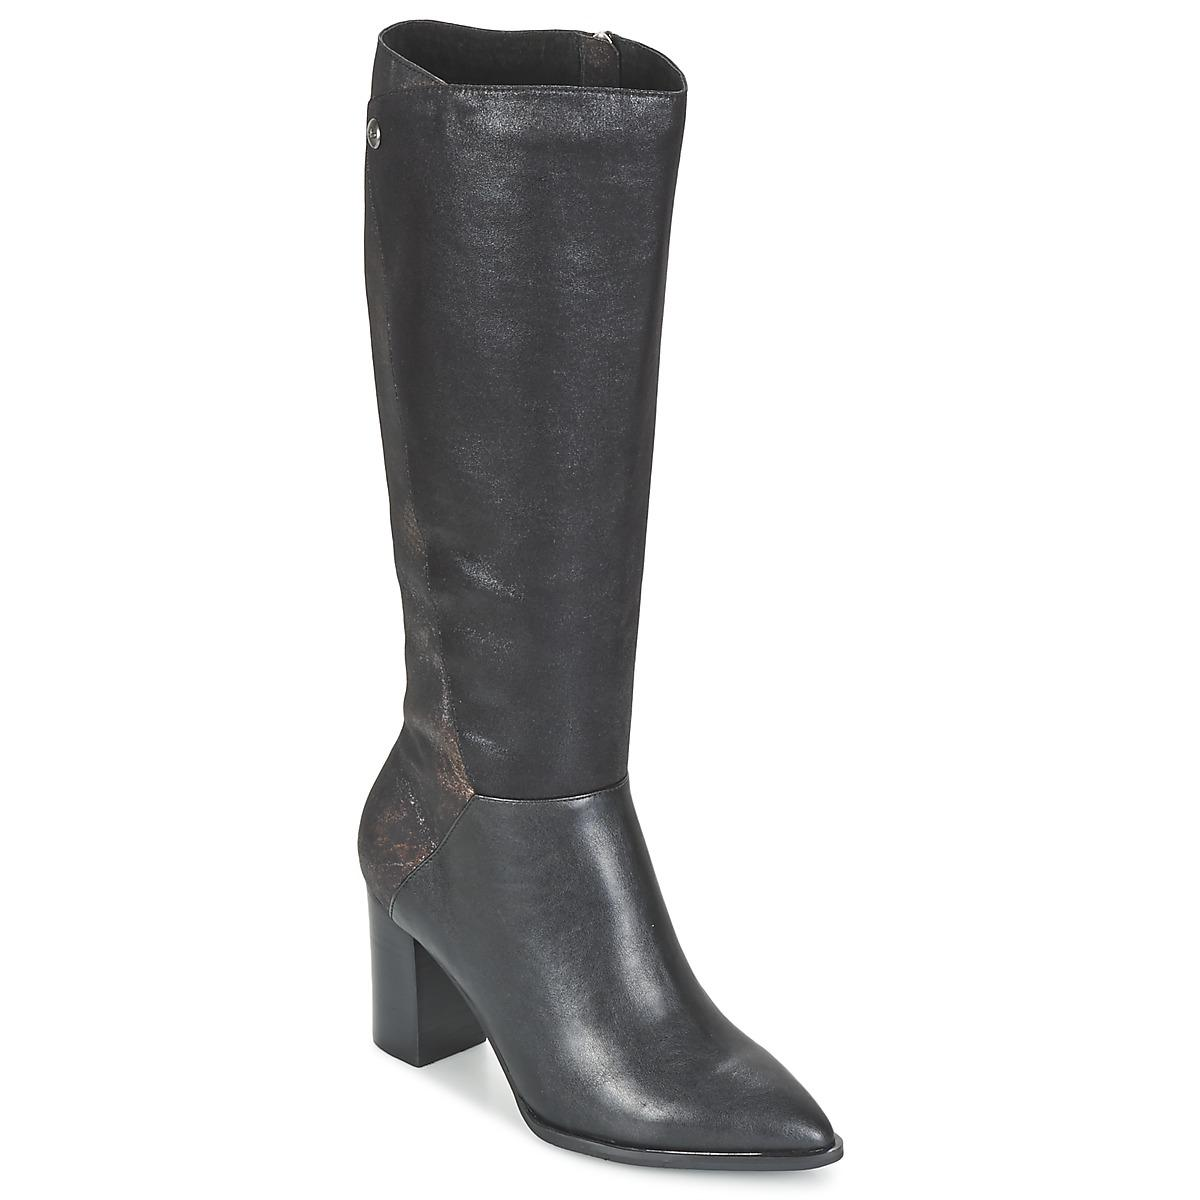 new arrivals 03e50 683b9 les-ptites-bombes-black-Jersey-Womens-High-Boots-In-Black.jpeg